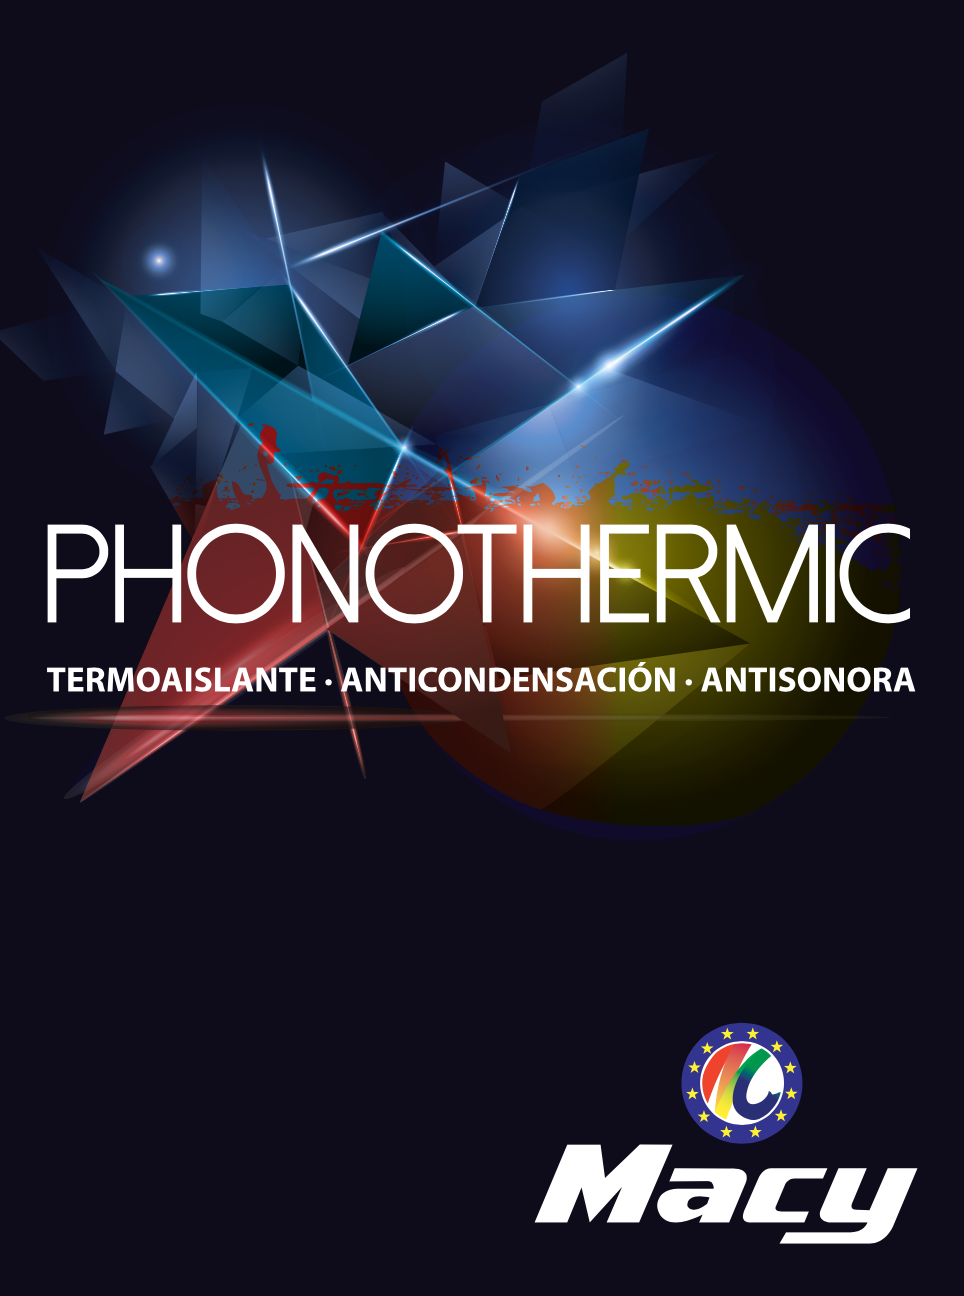 Phonothermic, the best option for energetic efficiency